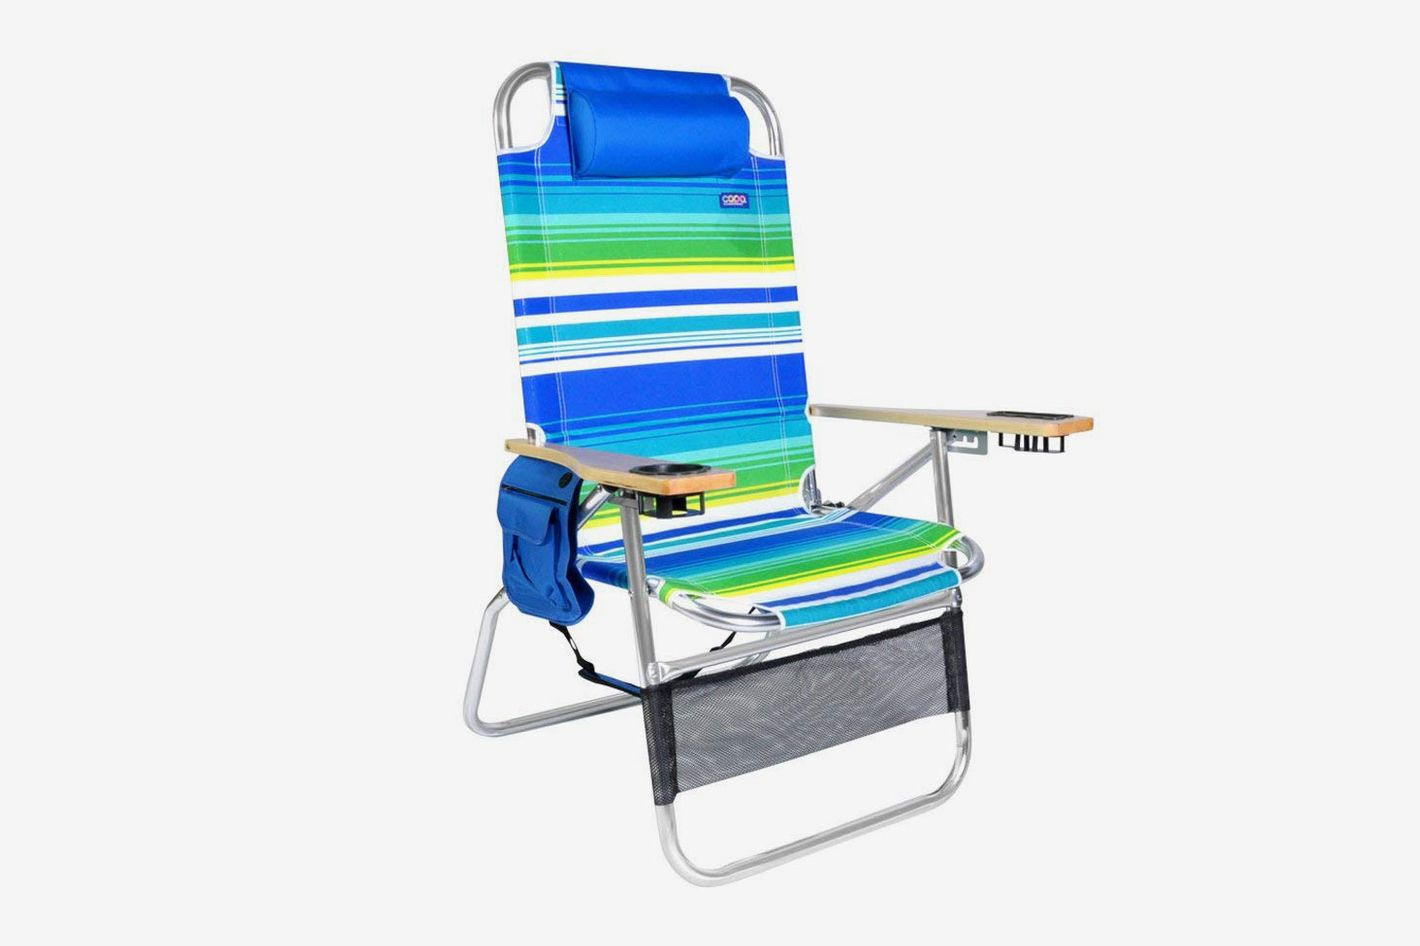 Big Papa 17 inch Hi-Seat Beach Chair